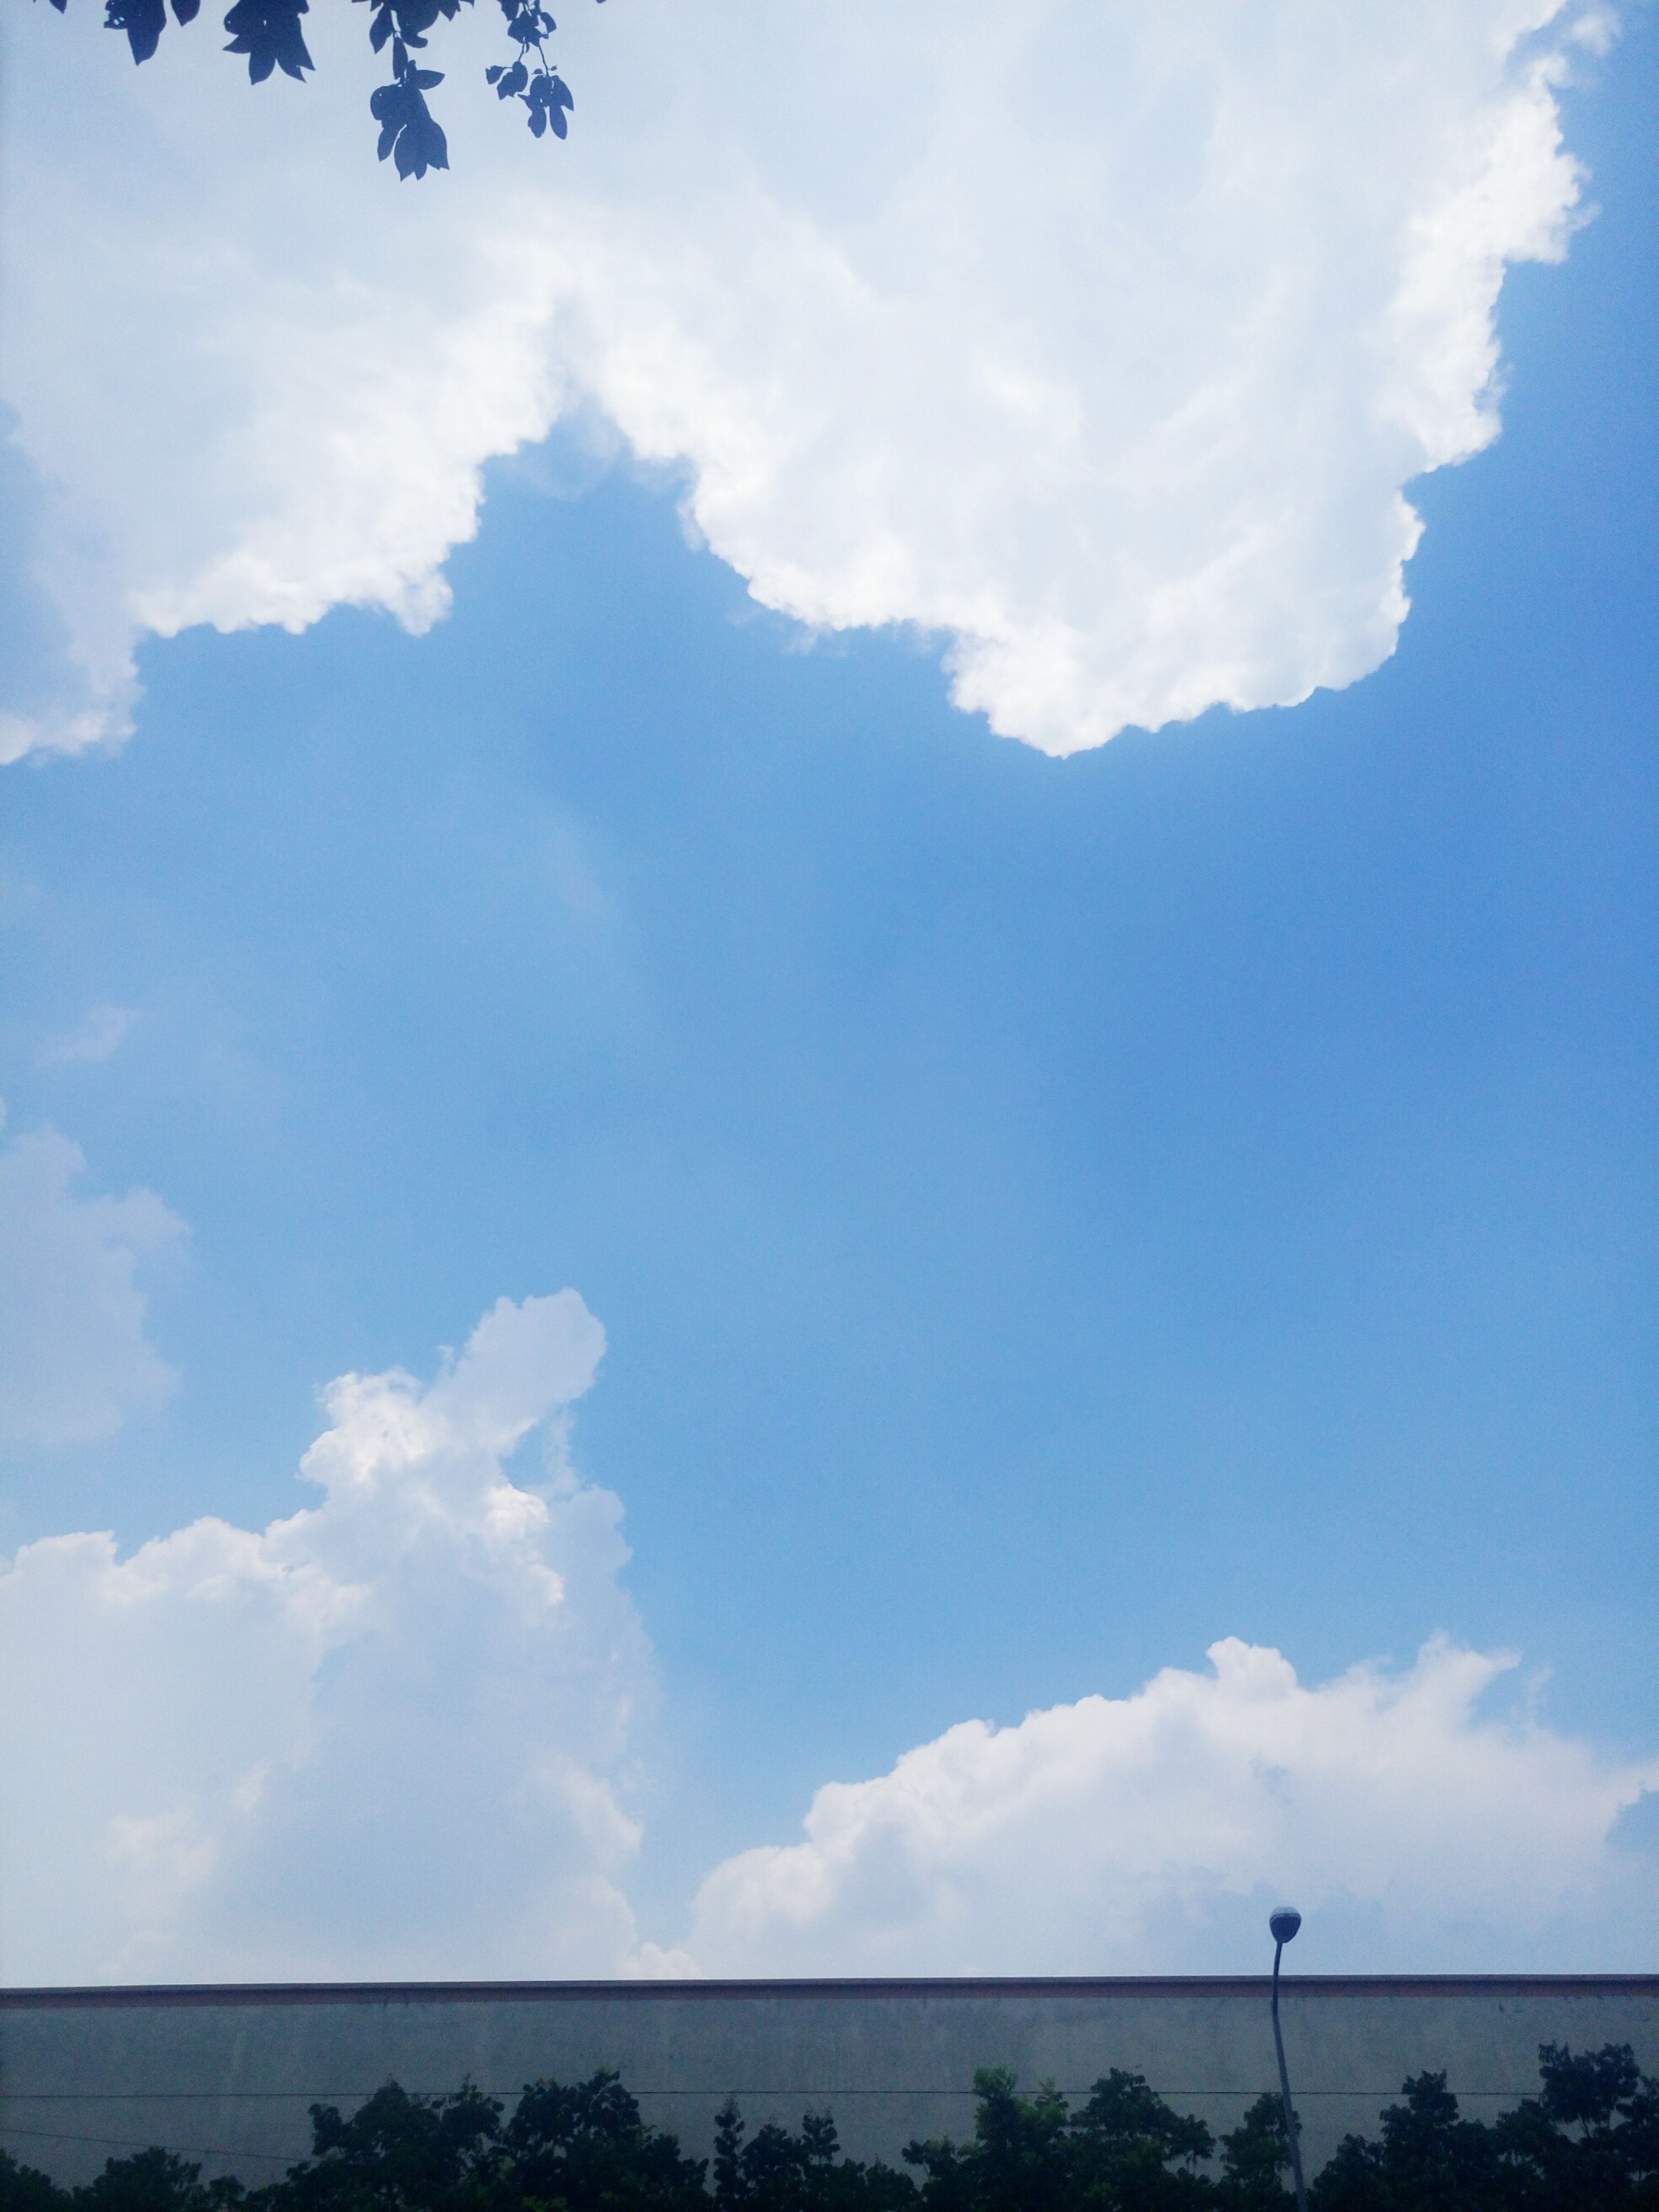 cloud - sky, sky, day, nature, beauty in nature, tranquility, no people, scenics, low angle view, outdoors, tranquil scene, tree